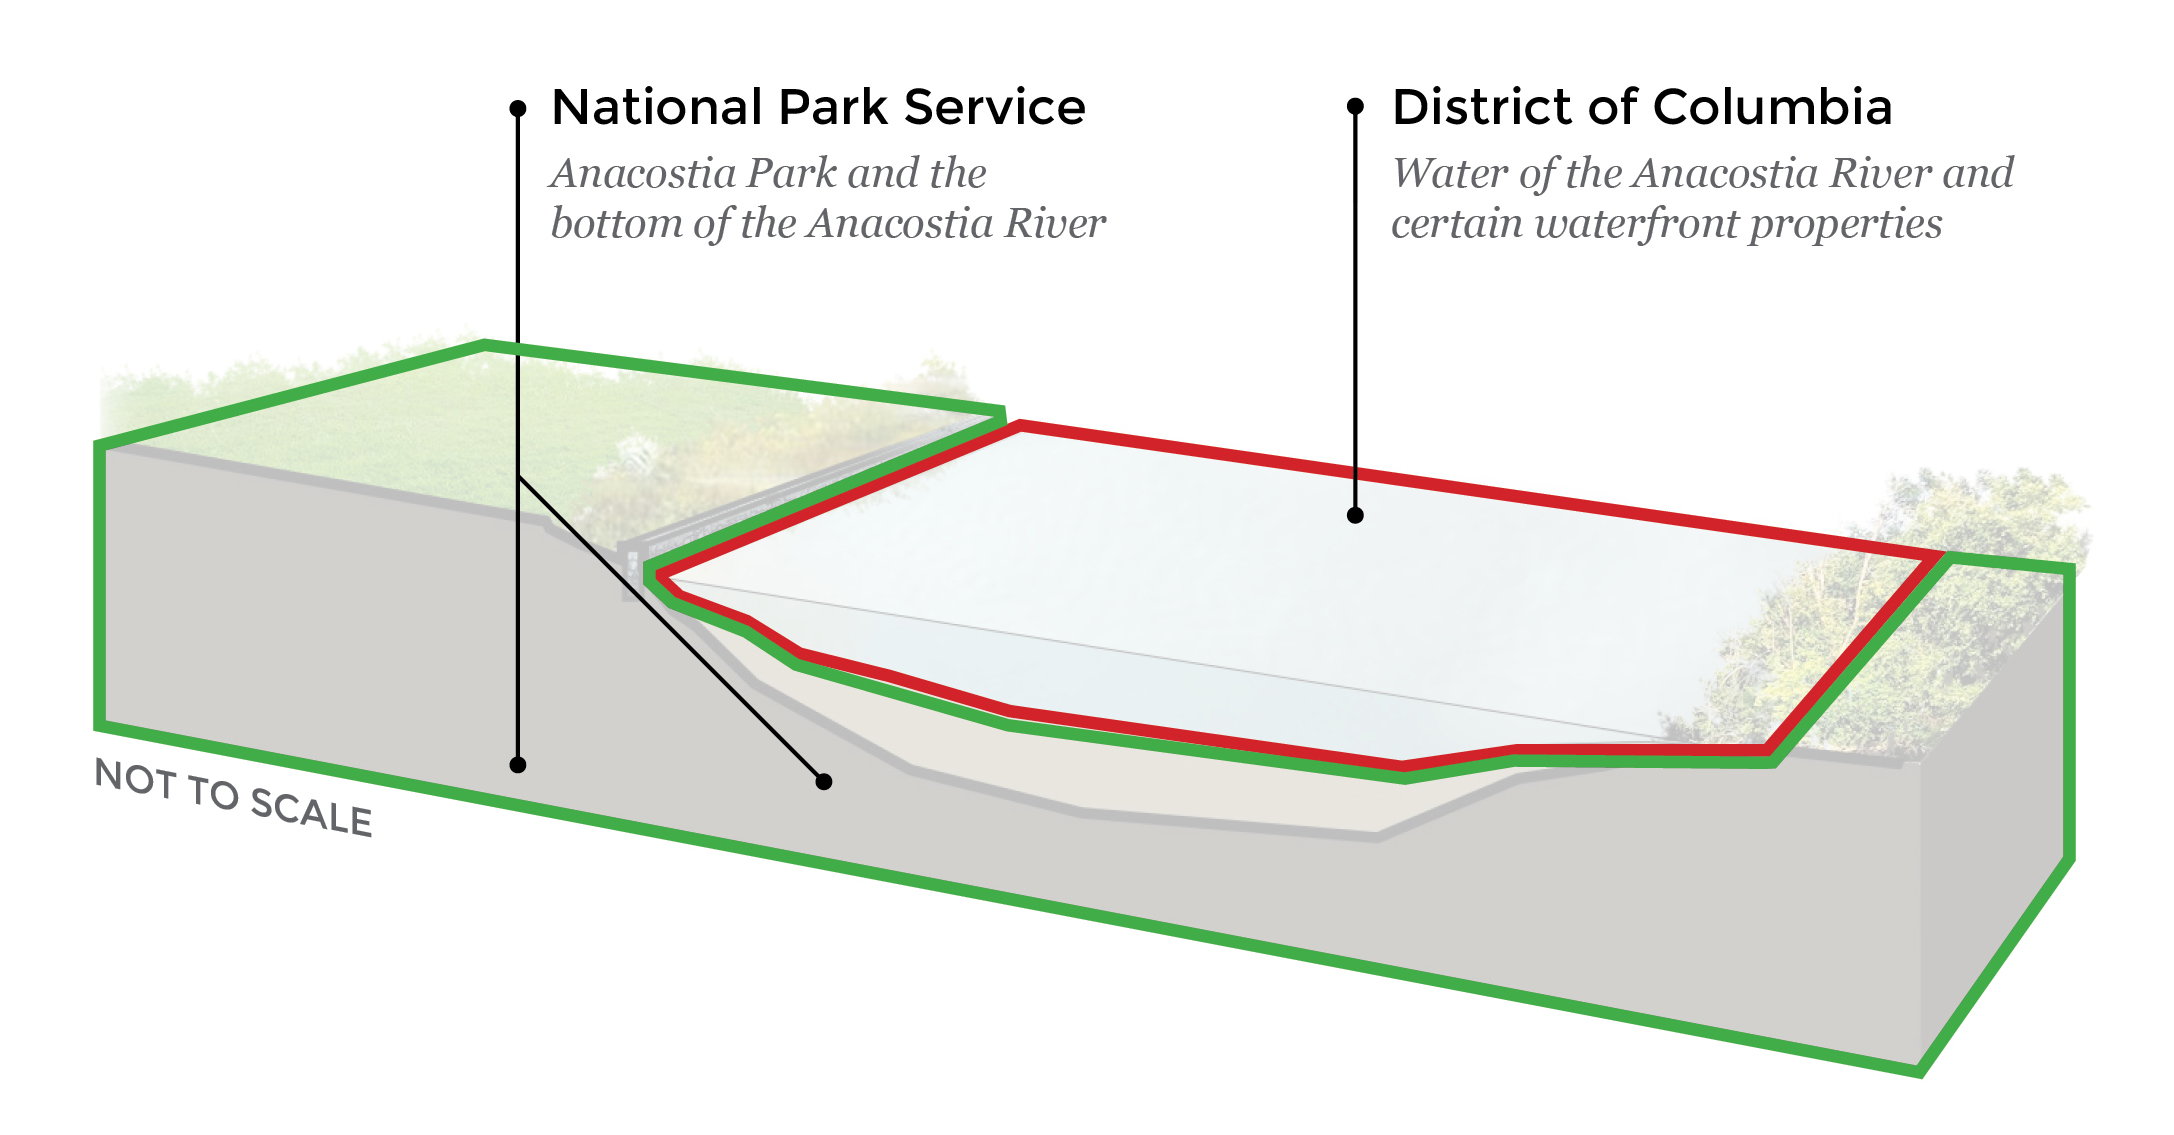 The bottom of the river and much of the parkland along the river are managed by the National Park Service, but the water of the river belongs to the District. There are areas along the river owned by the District, Maryland government agencies and private owners as well.